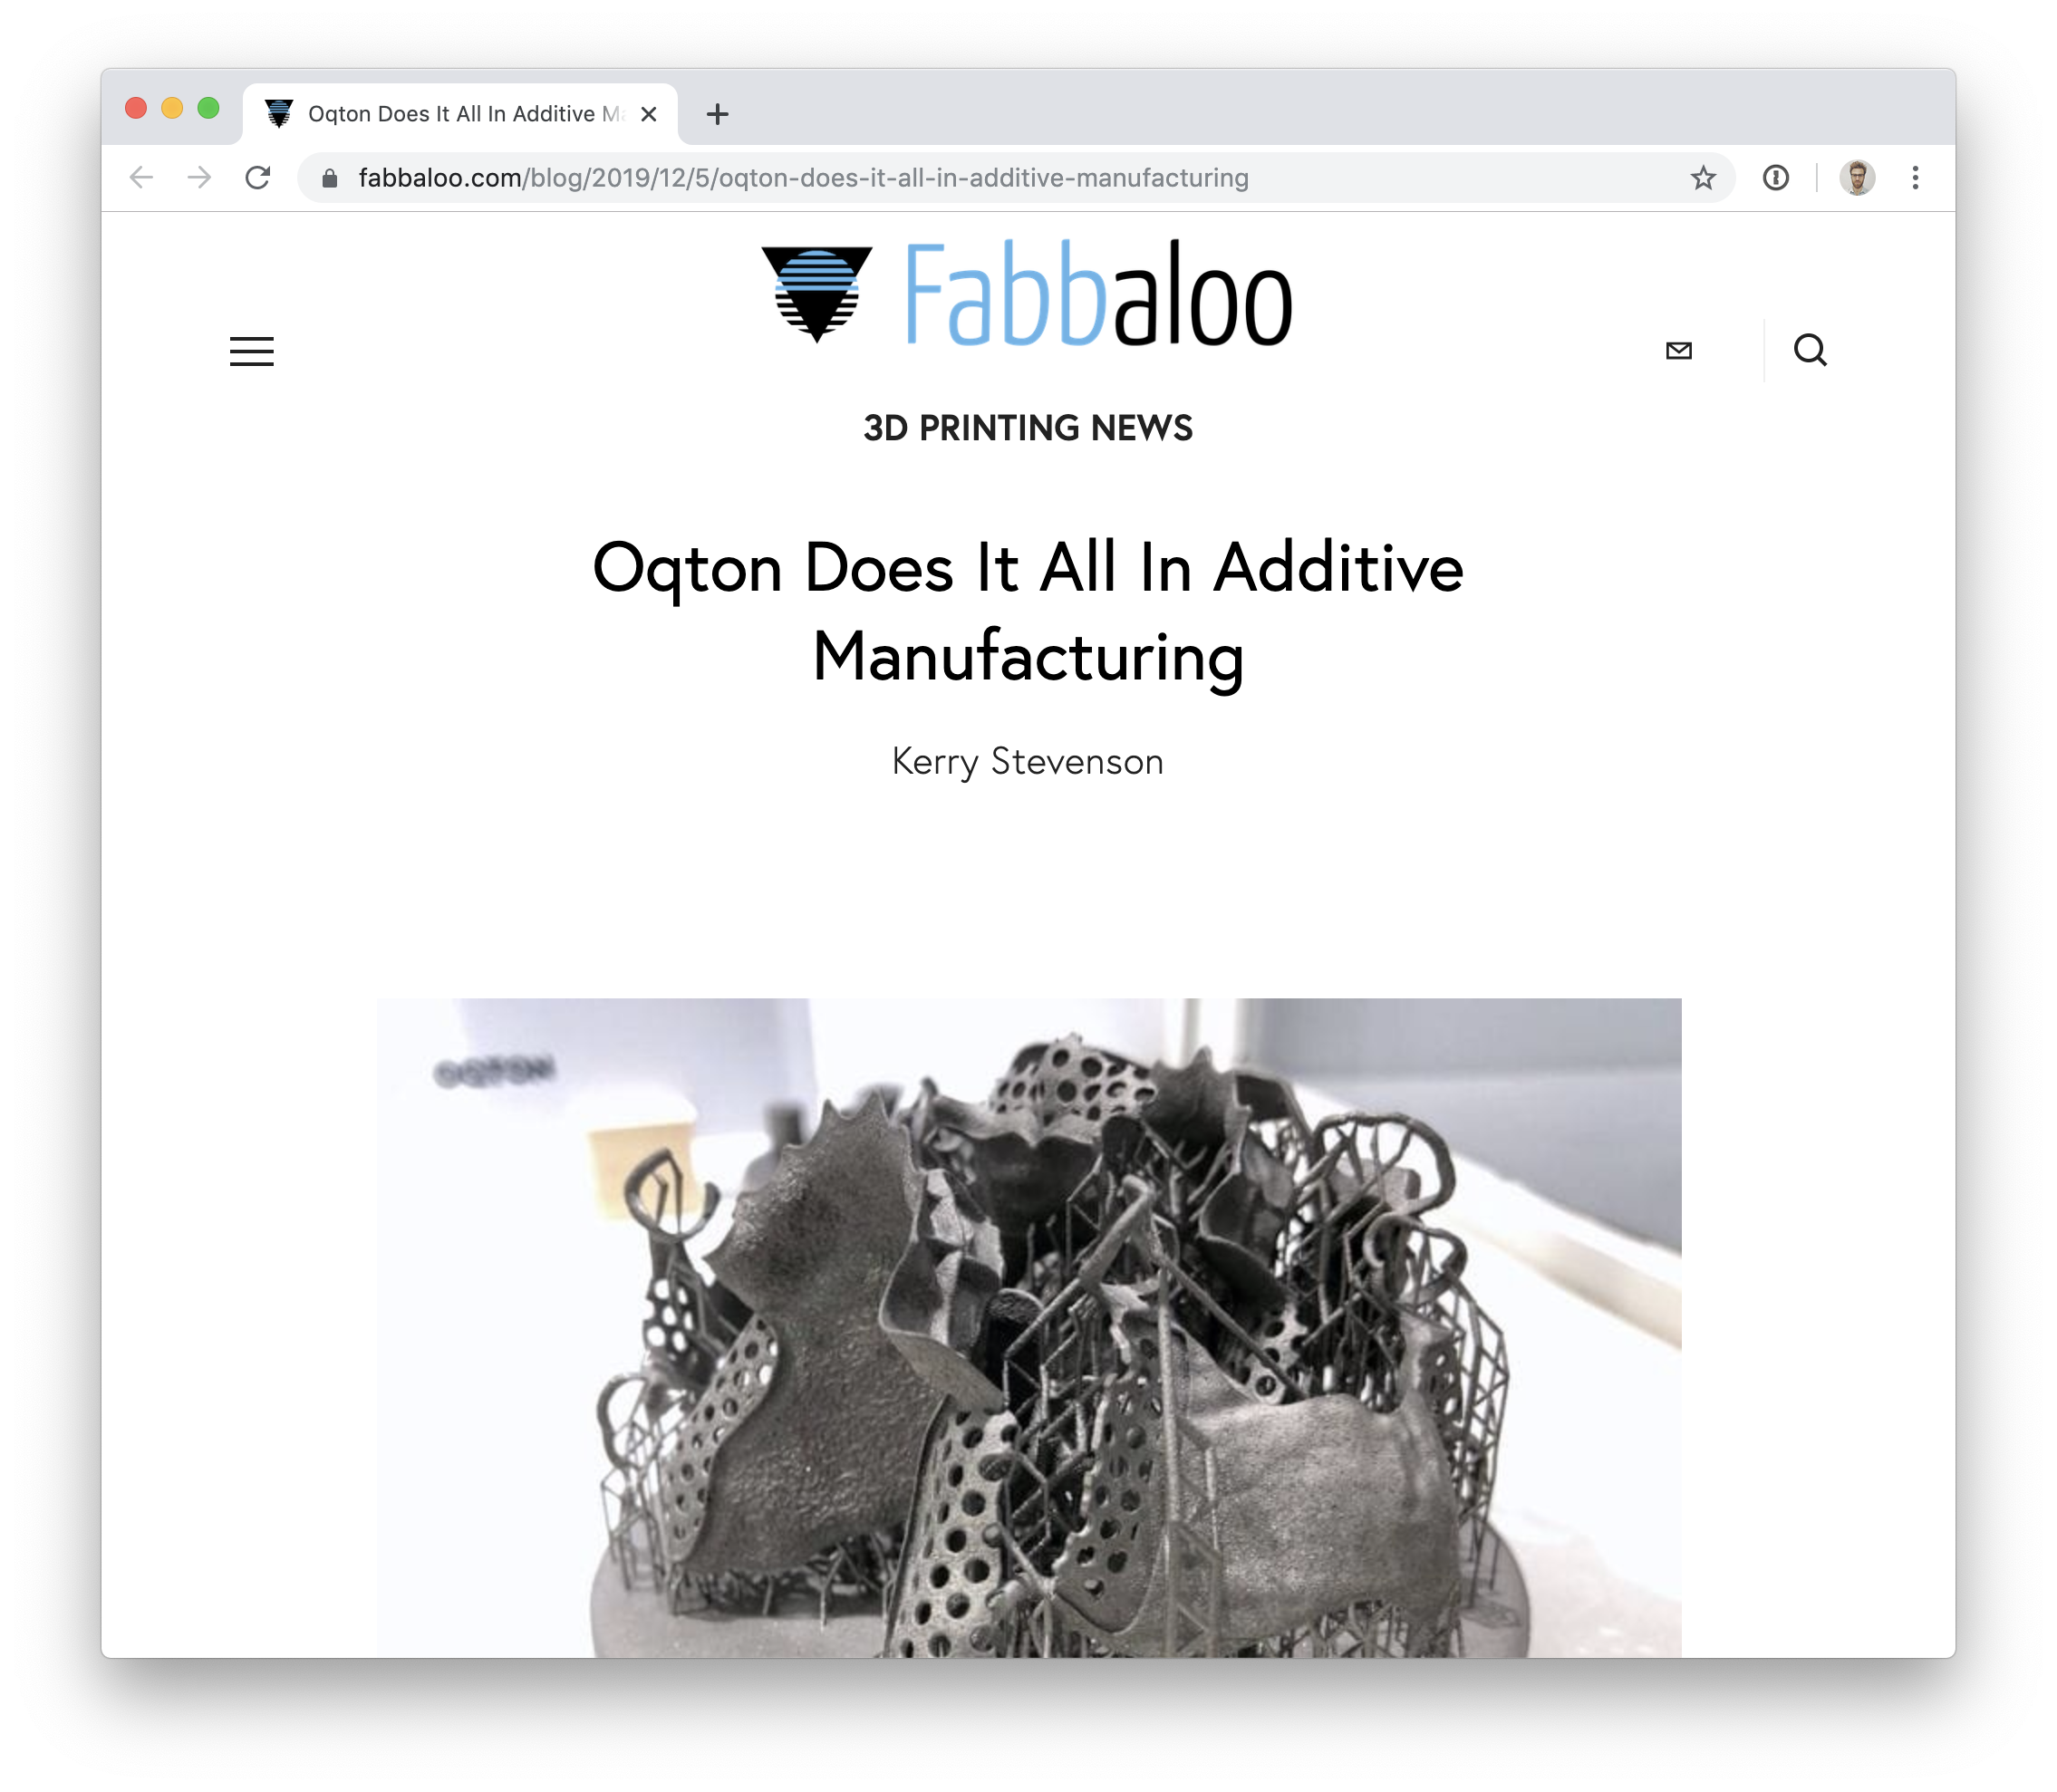 Fabbaloo article